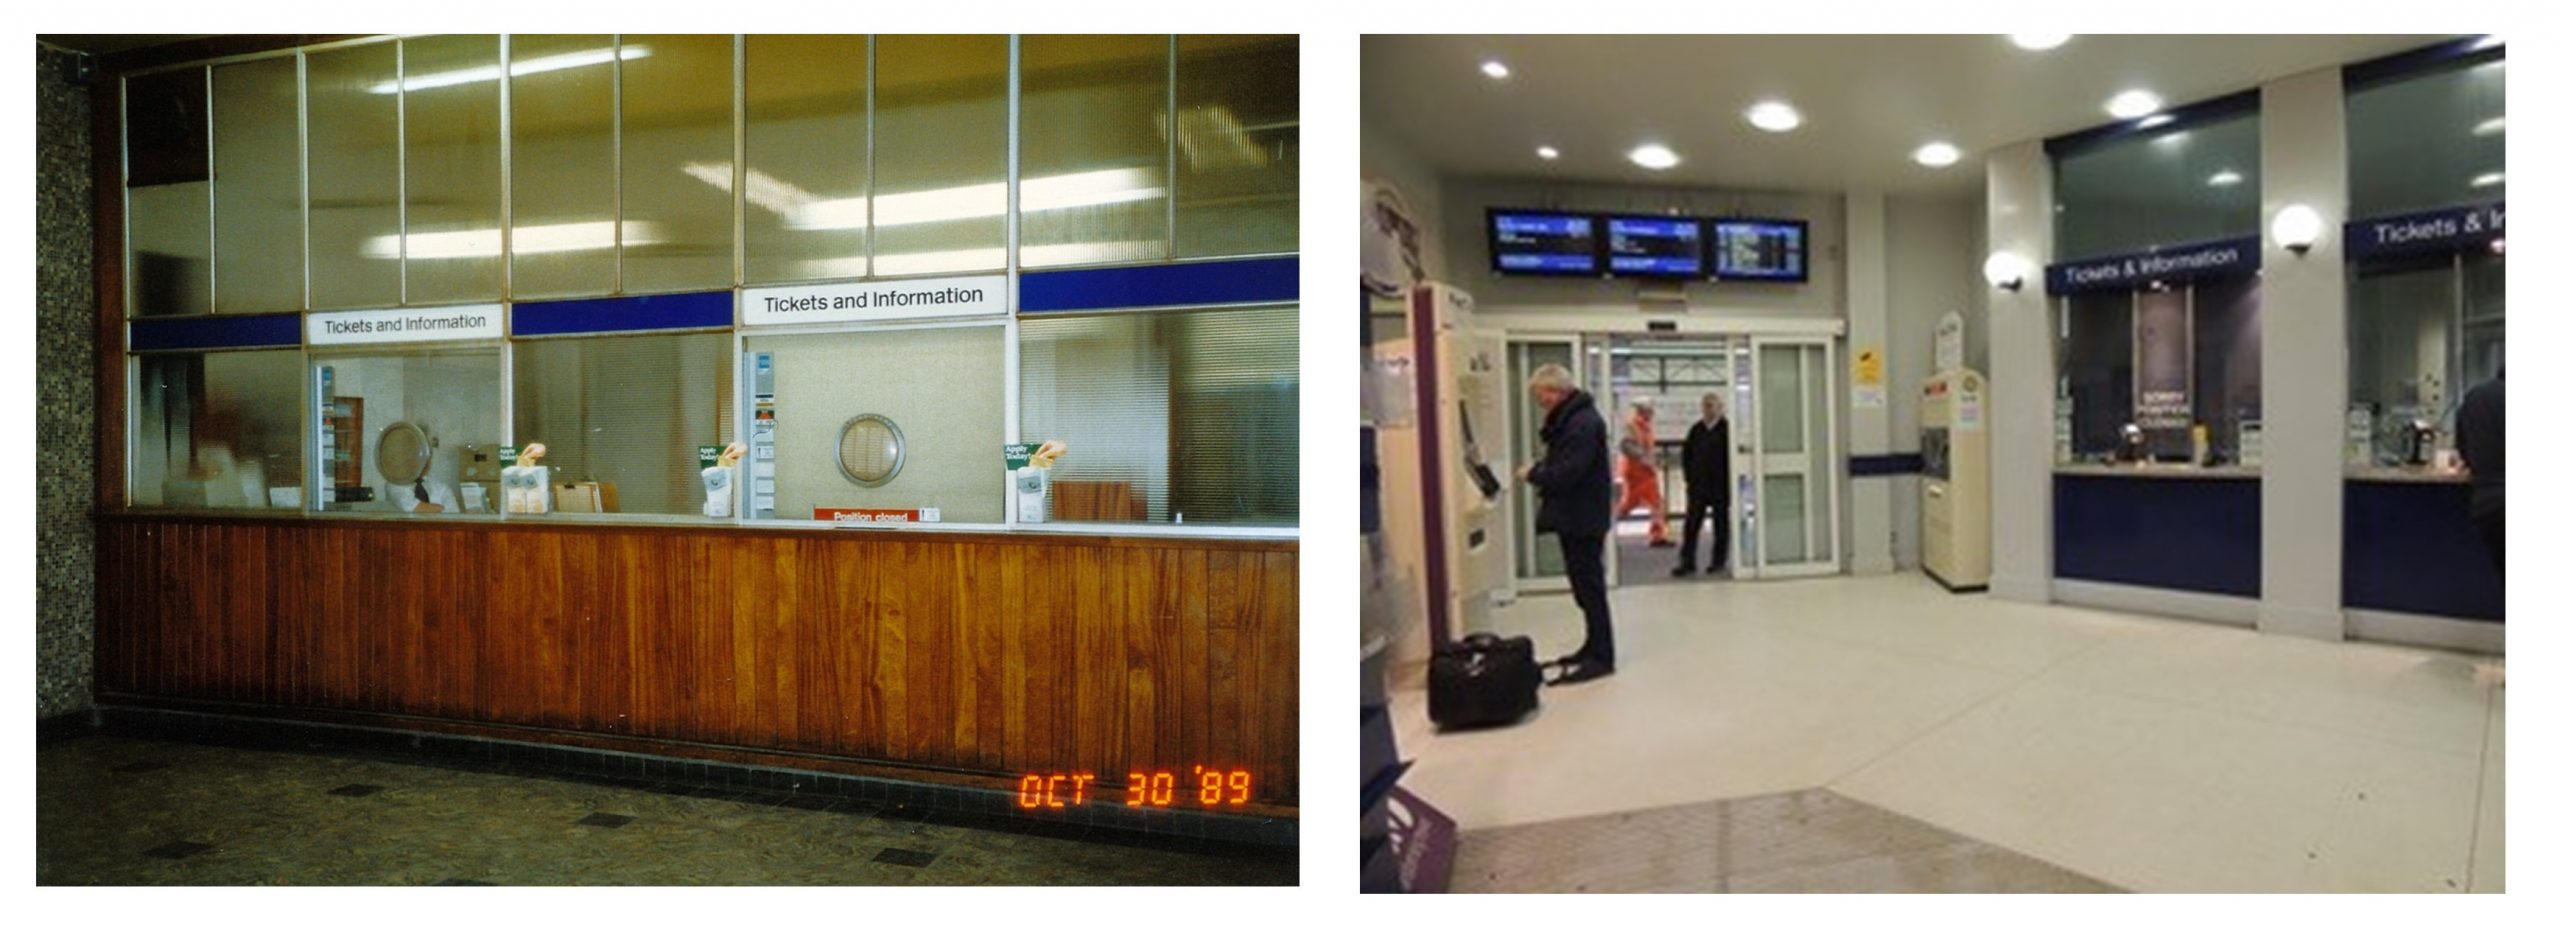 Two internal photographs of the ticket office. On the left, the ticket desk is made of wood paneling with glass windows. On the right the desk has been updated and is brighter with blue and white frontages.